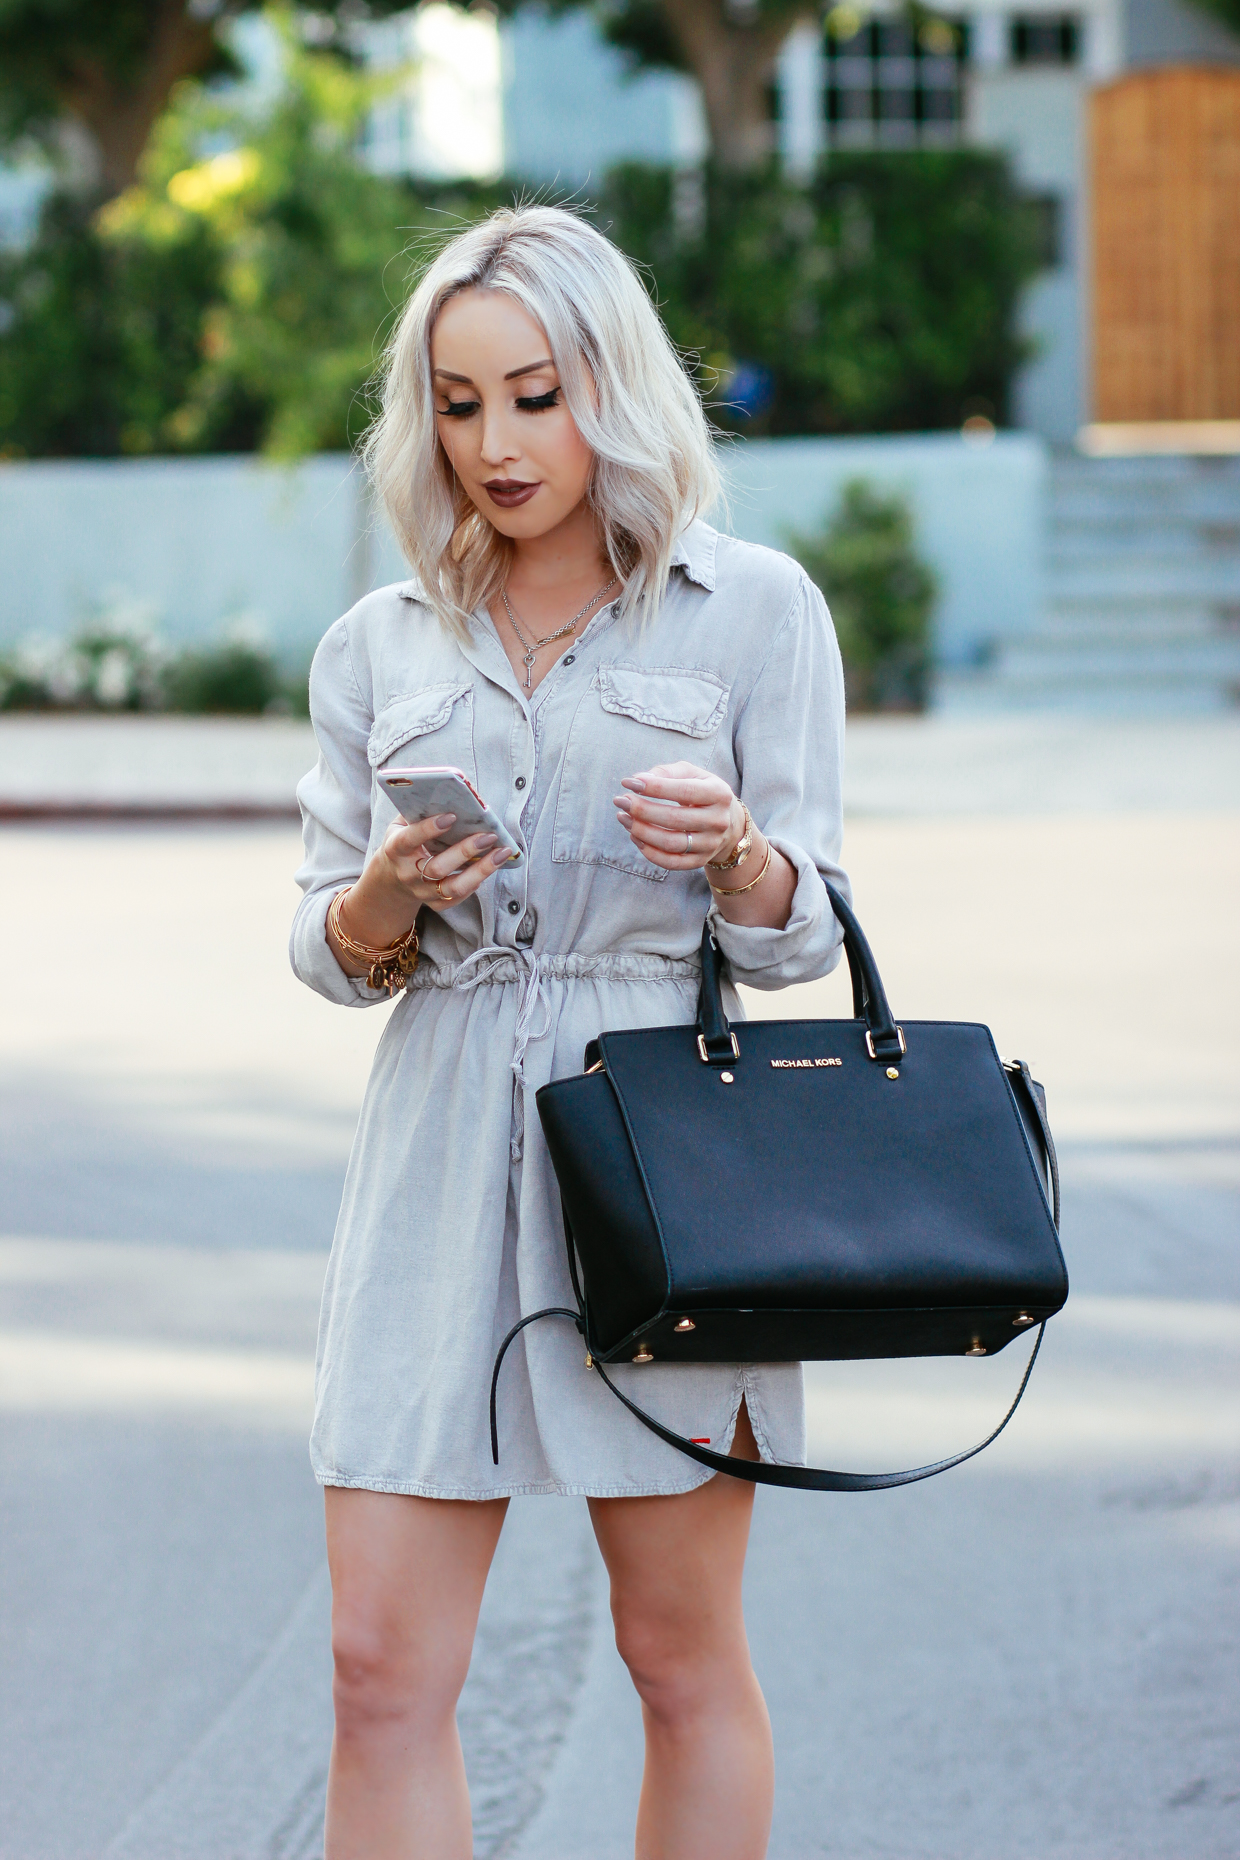 Blondie in the City | Button Up Cargo Dress, Michael Kors Bag, Ankle Strap Heels